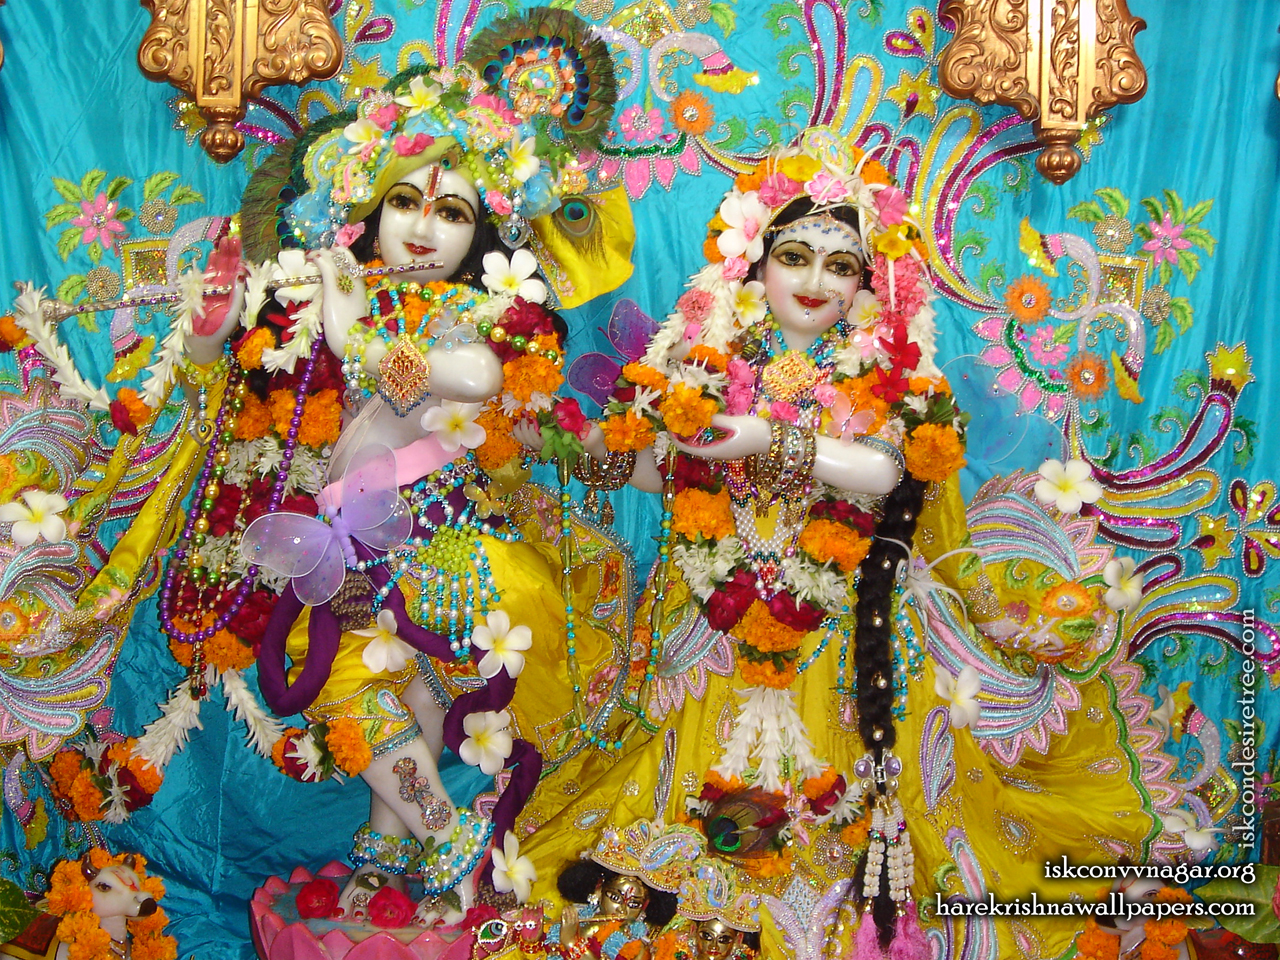 Sri Sri Radha Giridhari Wallpaper (008) Size 1280x960 Download